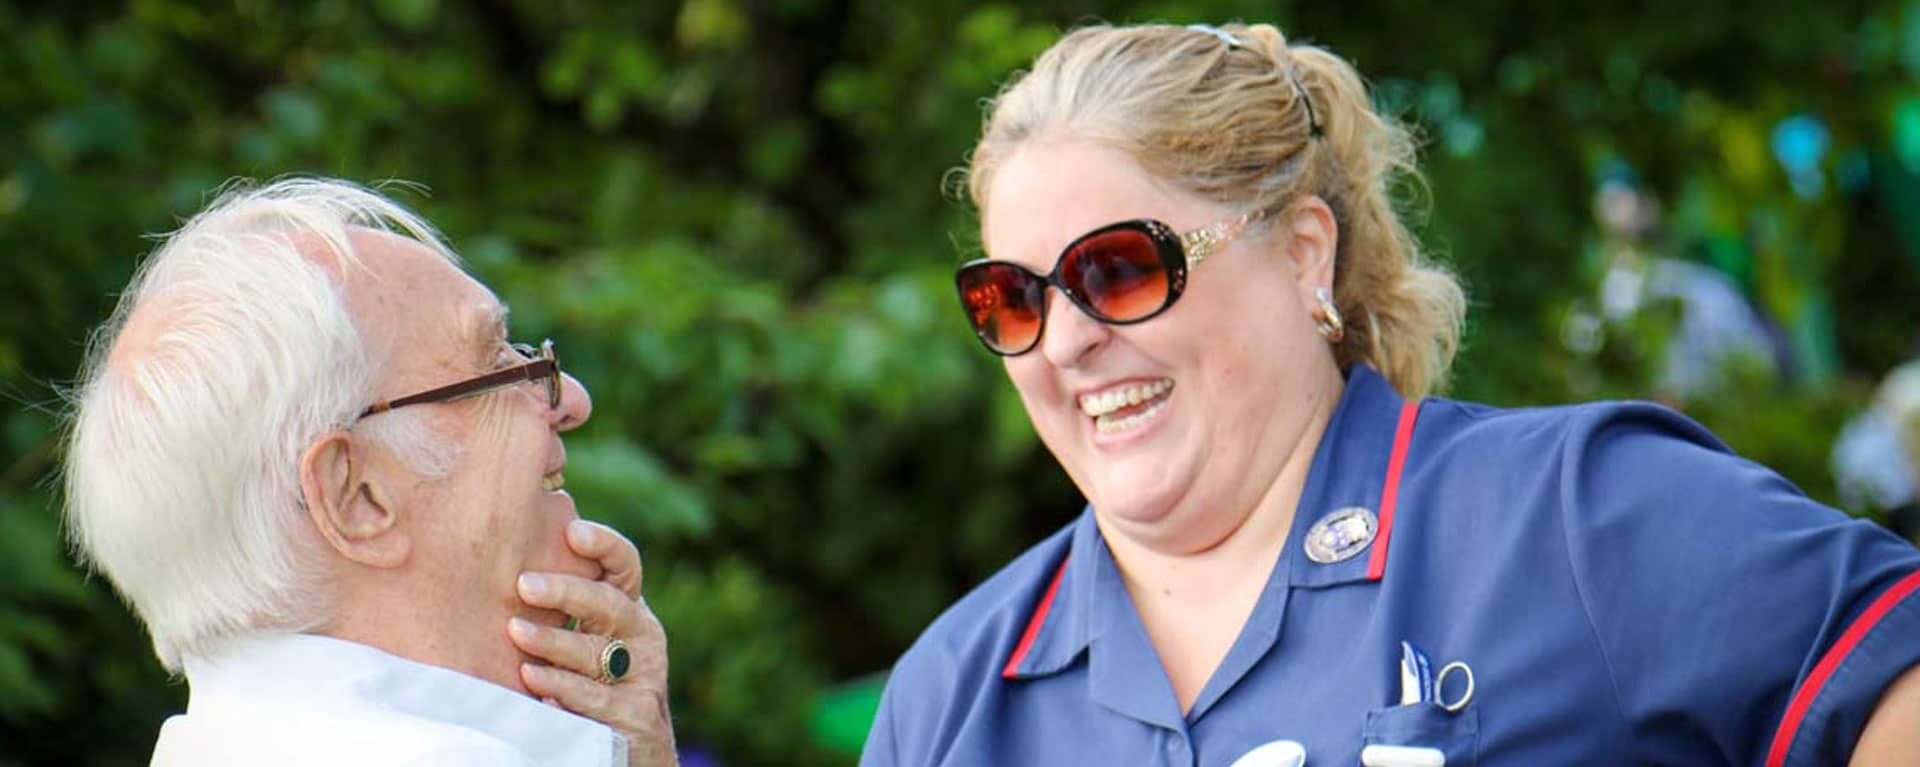 Register Care Home manager and resident laughing in the garden